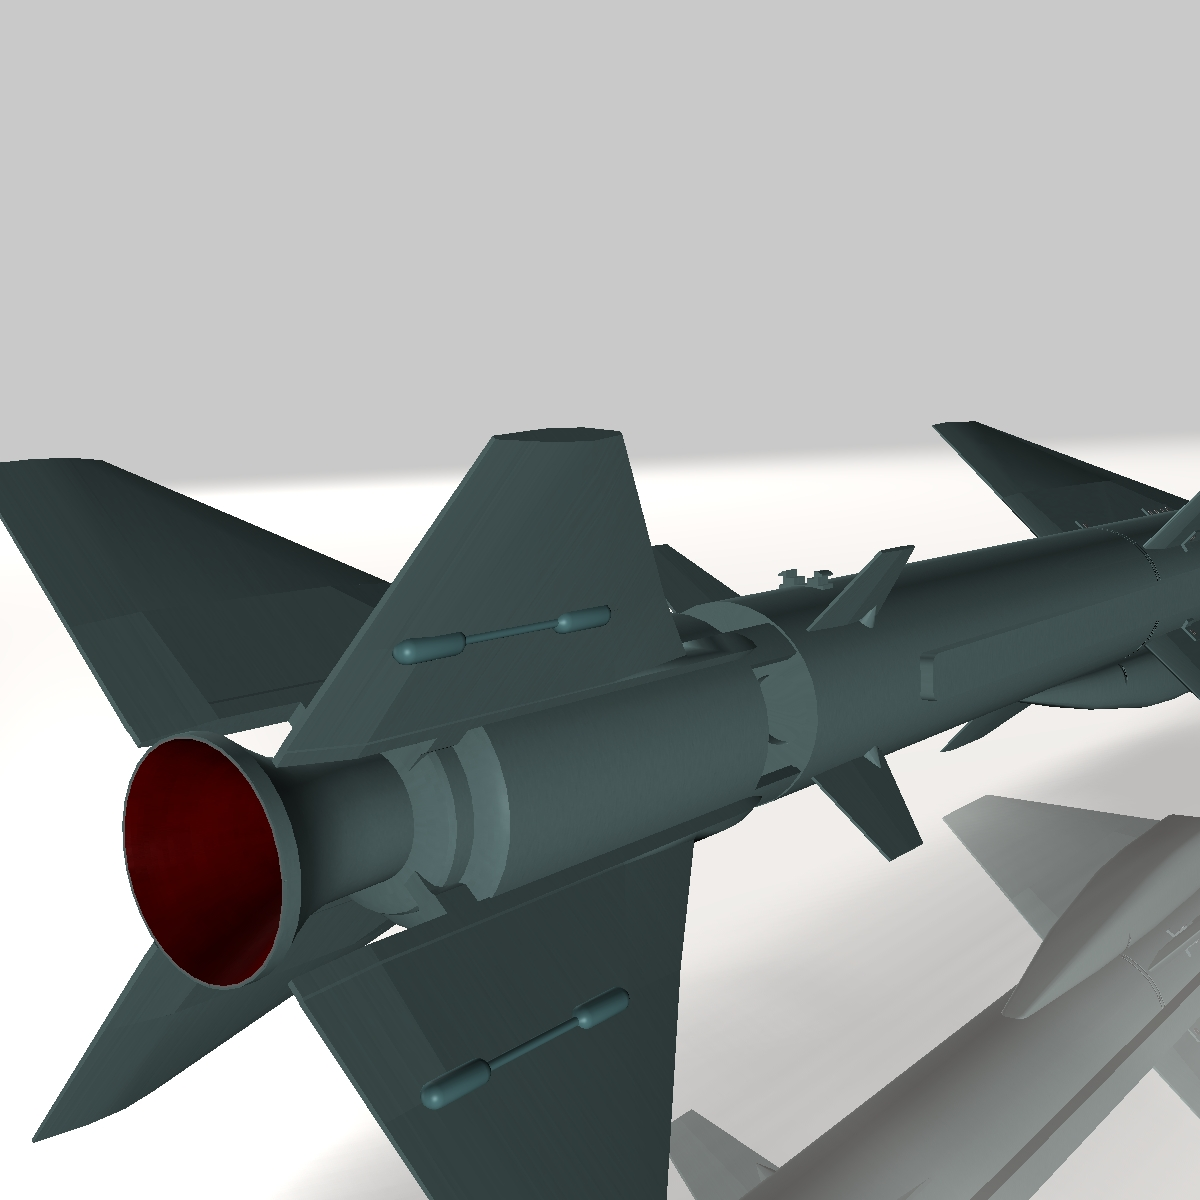 iranian noor cruise missile 3d model 3ds dxf x cod scn obj 149368